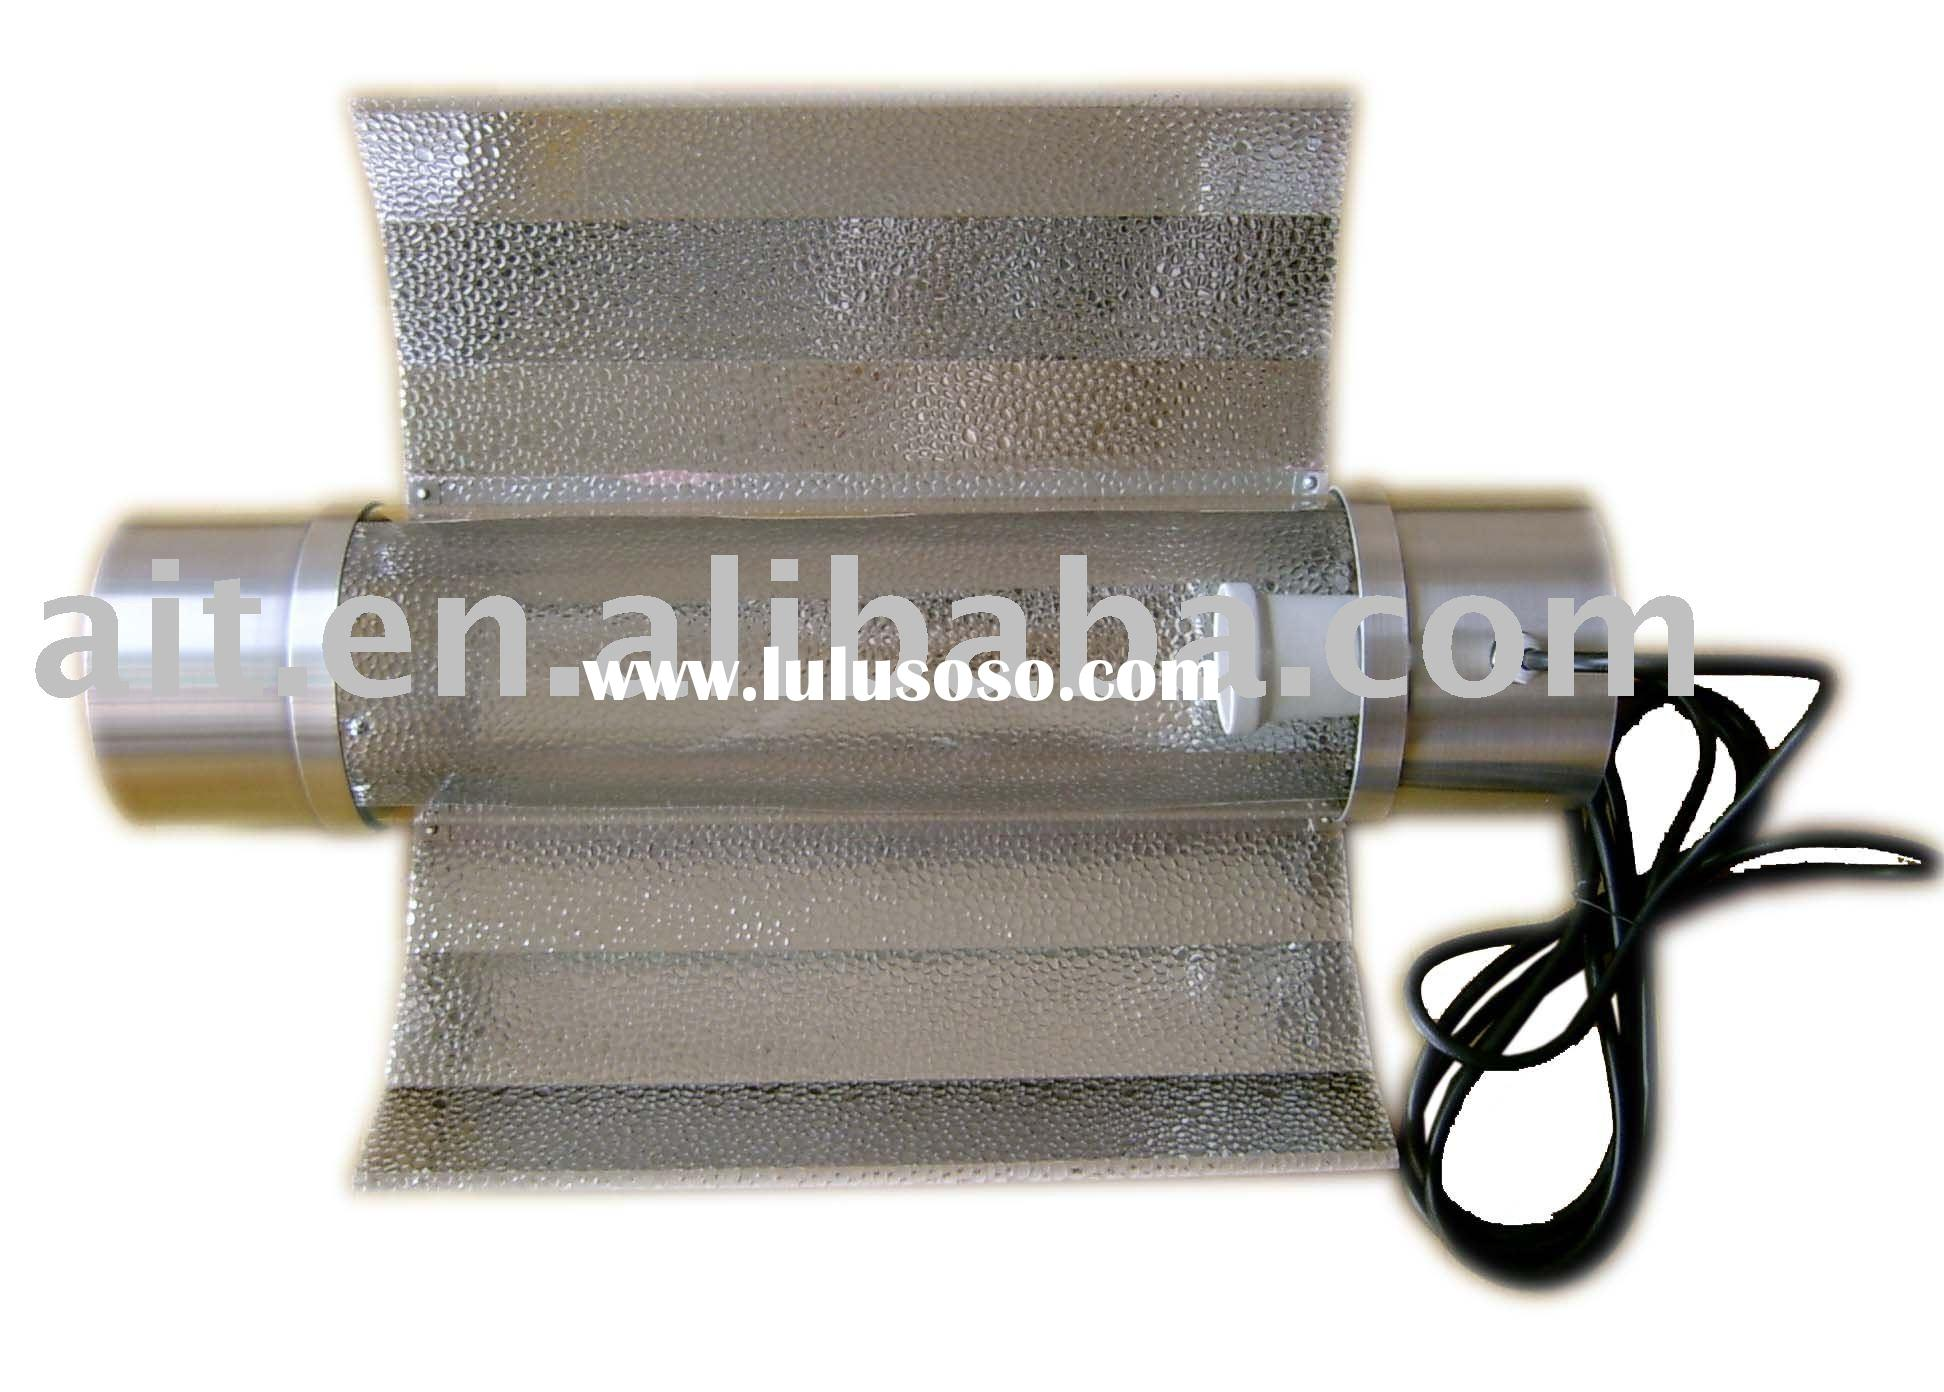 hydroponic cool tube light reflector, aluminum reflector